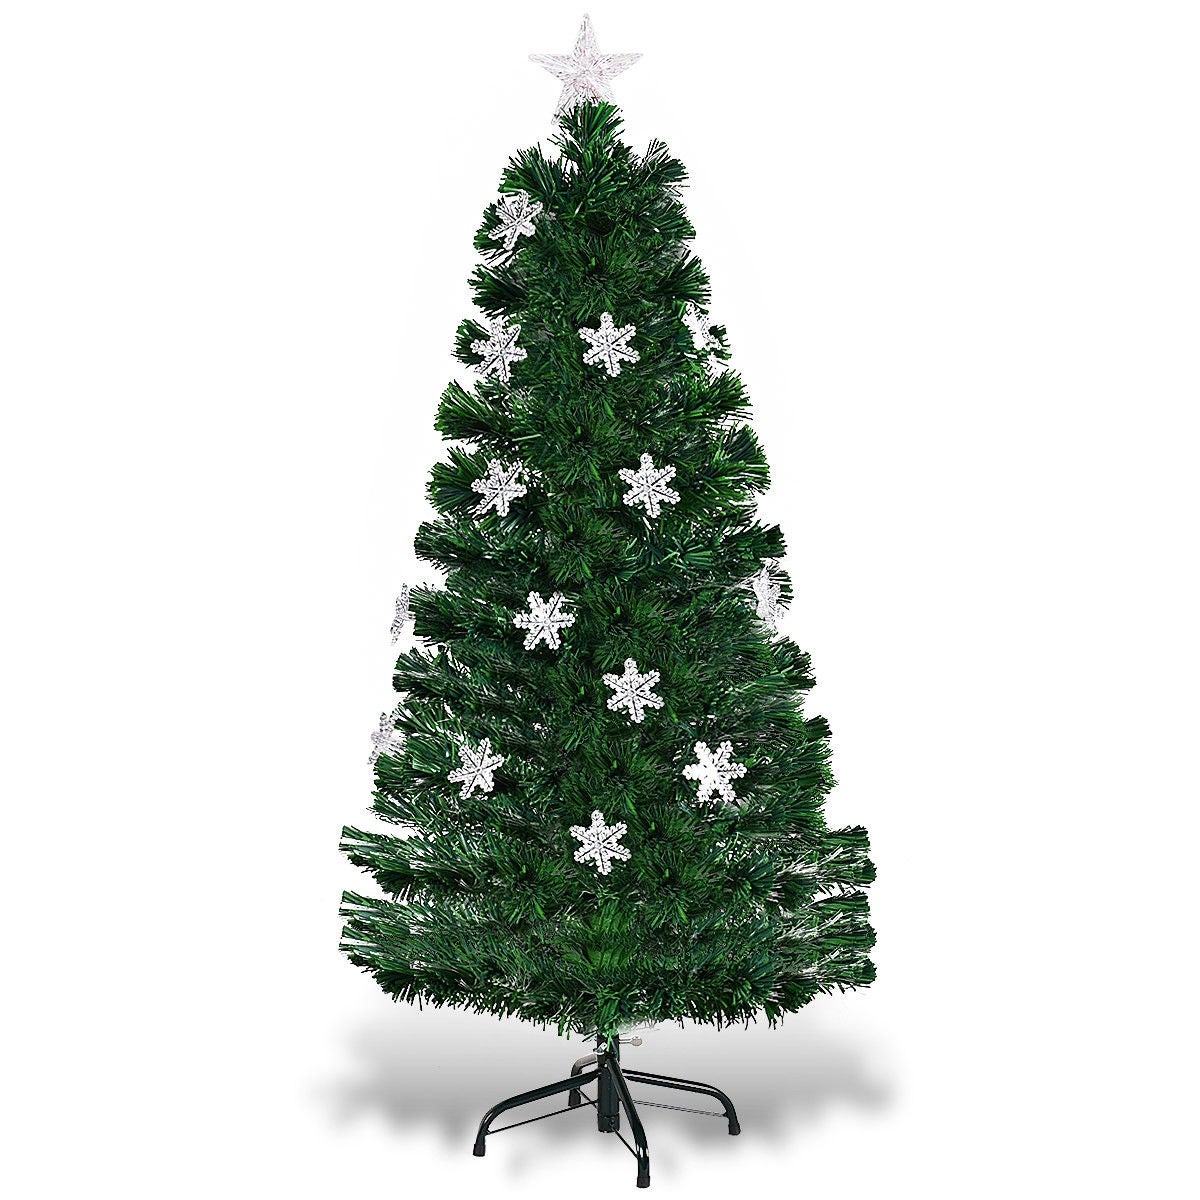 4 Ft Christmas Tree.Costway 4ft Pre Lit Fiber Optic Artificial Christmas Tree W Multicolor Lights Snowflakes